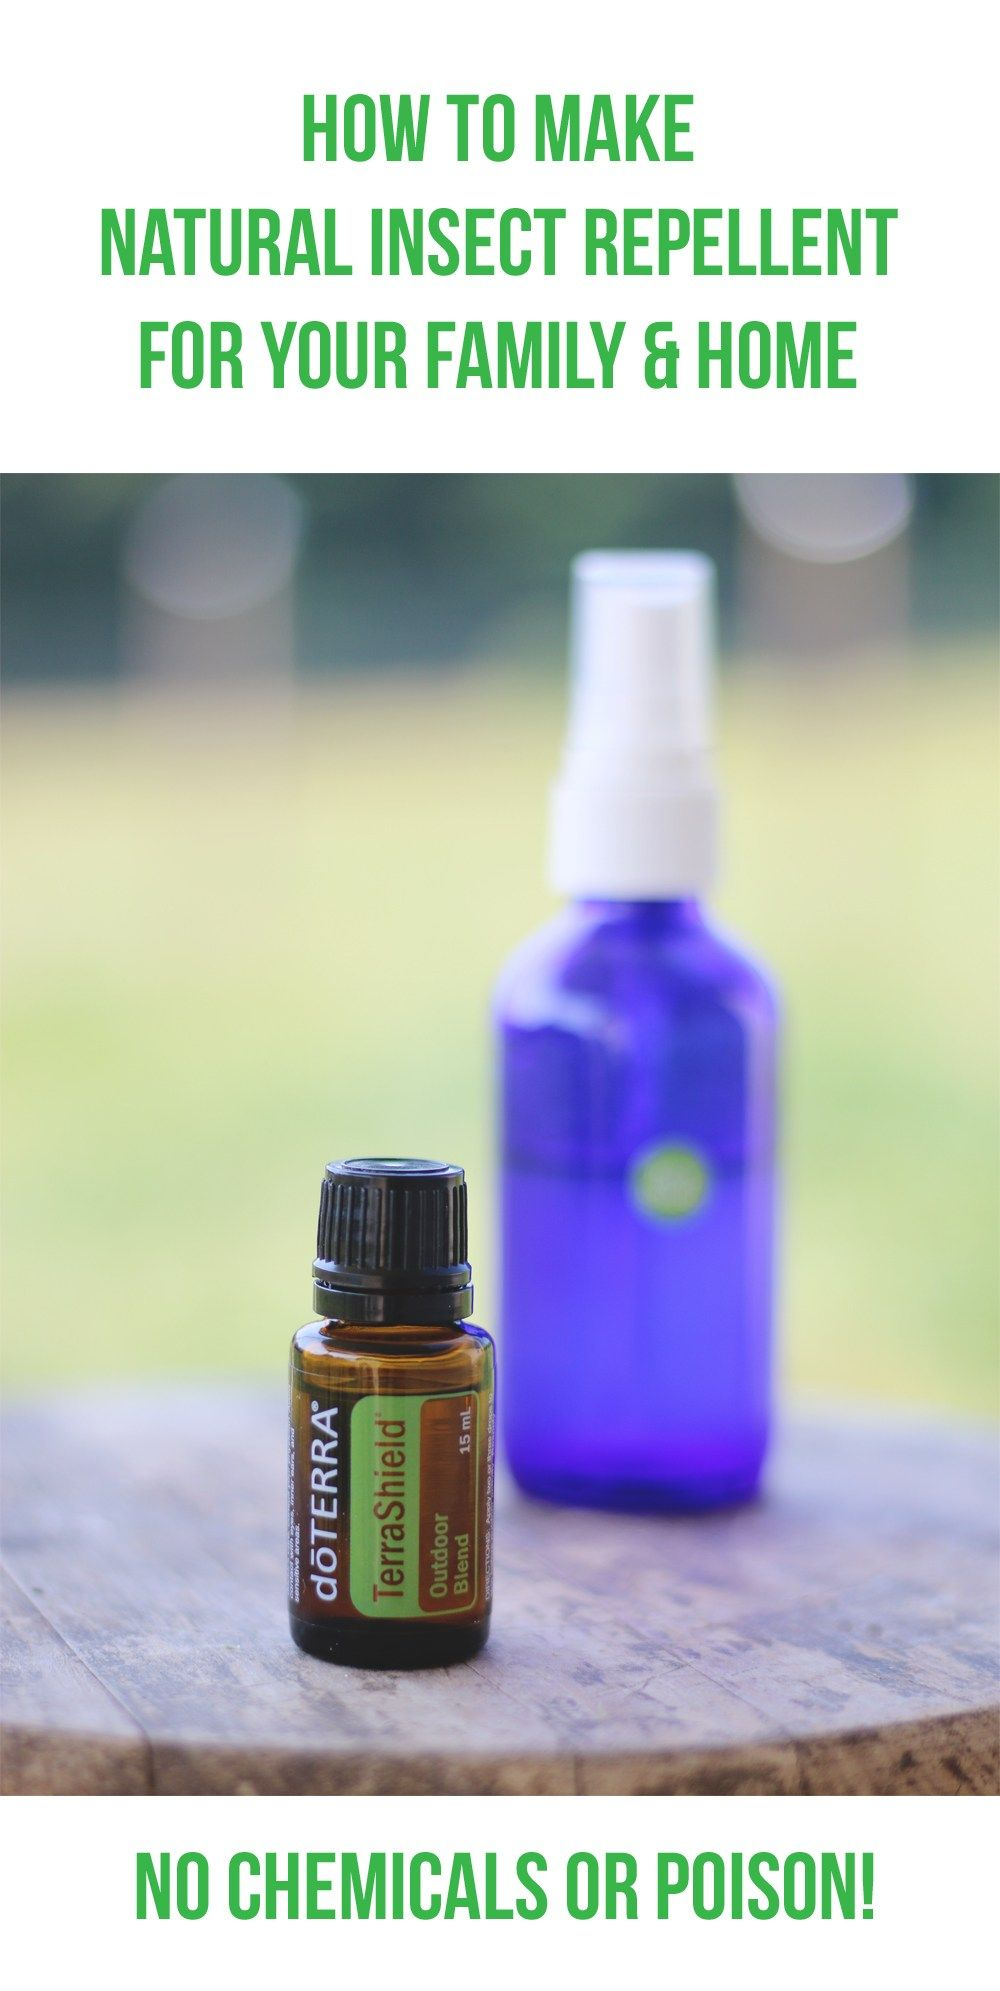 How to Make Natural Insect Repellent Natural insect